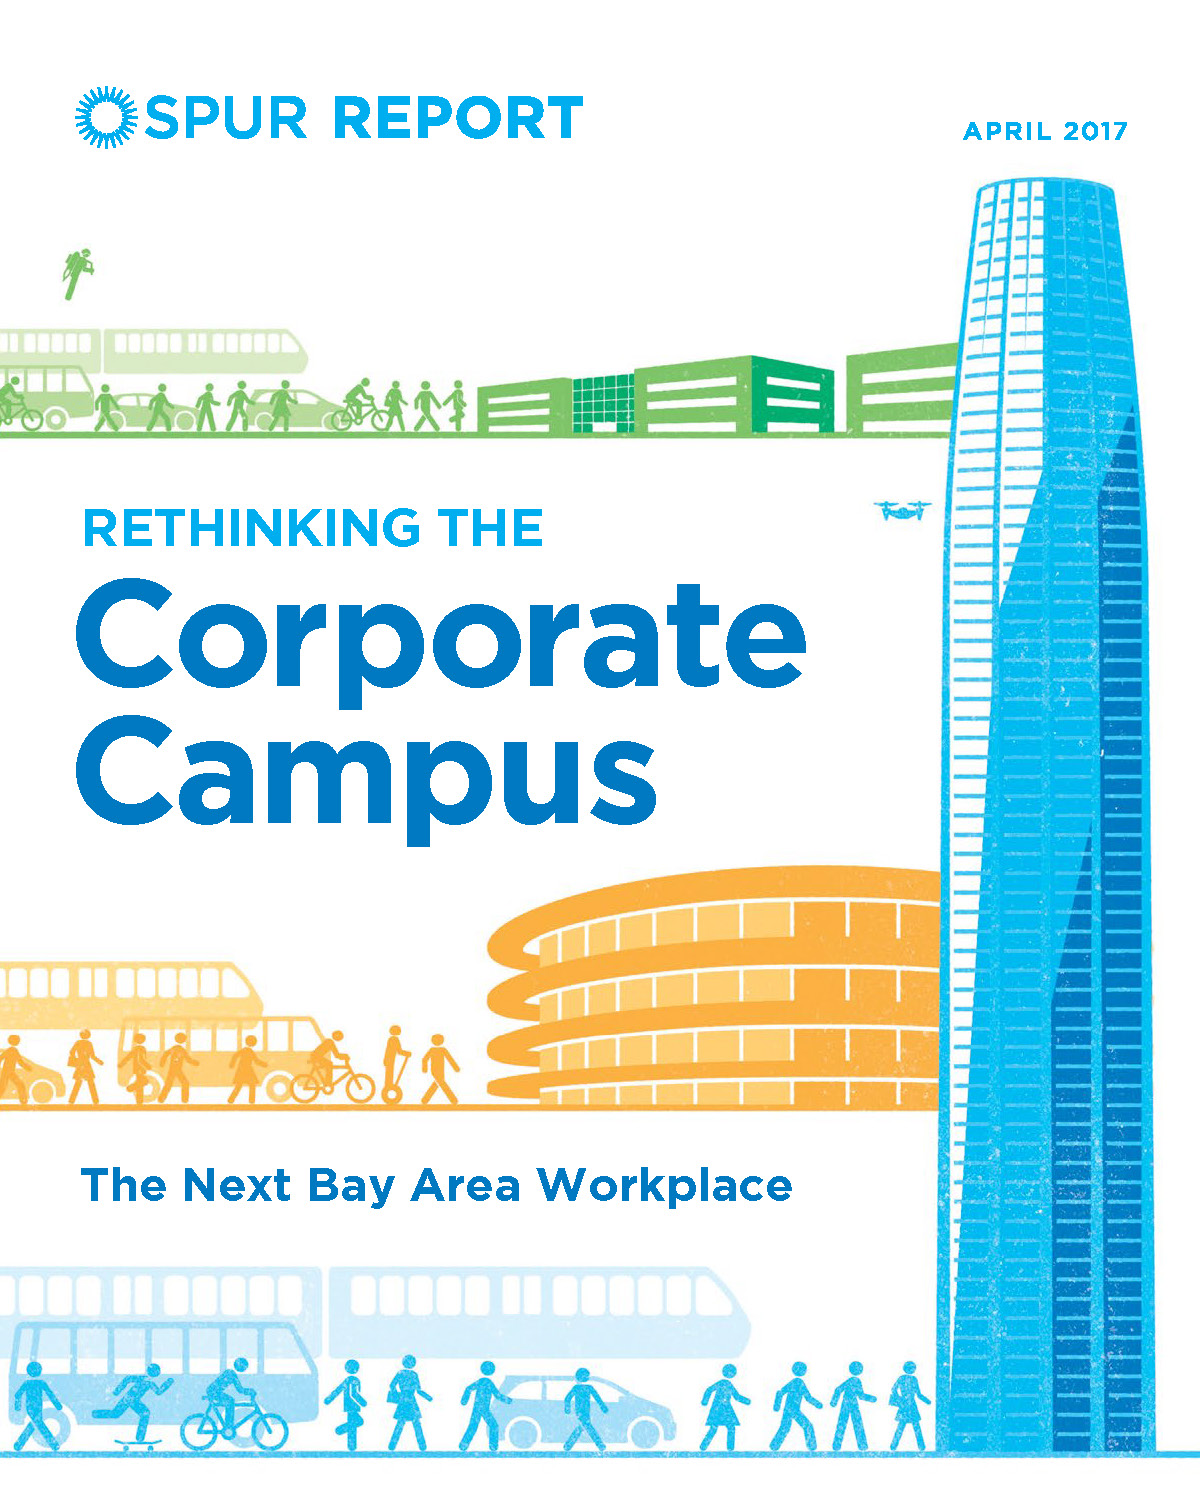 Laura Crescimano has been part of the task force behind the report, Rethinking the Corporate Campus - April 20, 2017